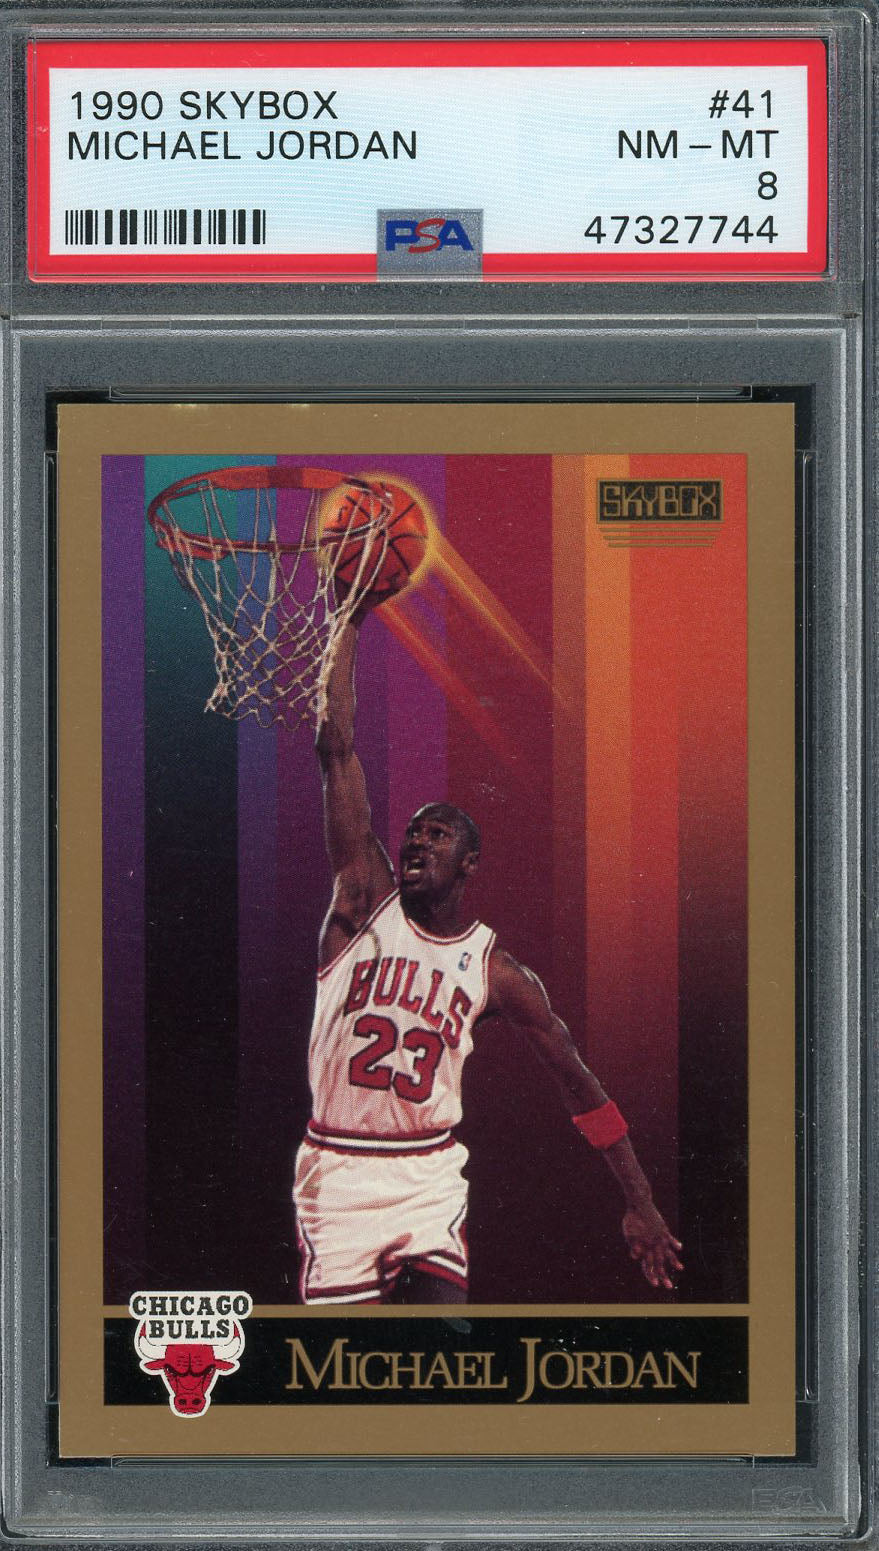 Michael Jordan Chicago Bulls 1990 Skybox Basketball Card #41 Graded PSA 8-Powers Sports Memorabilia